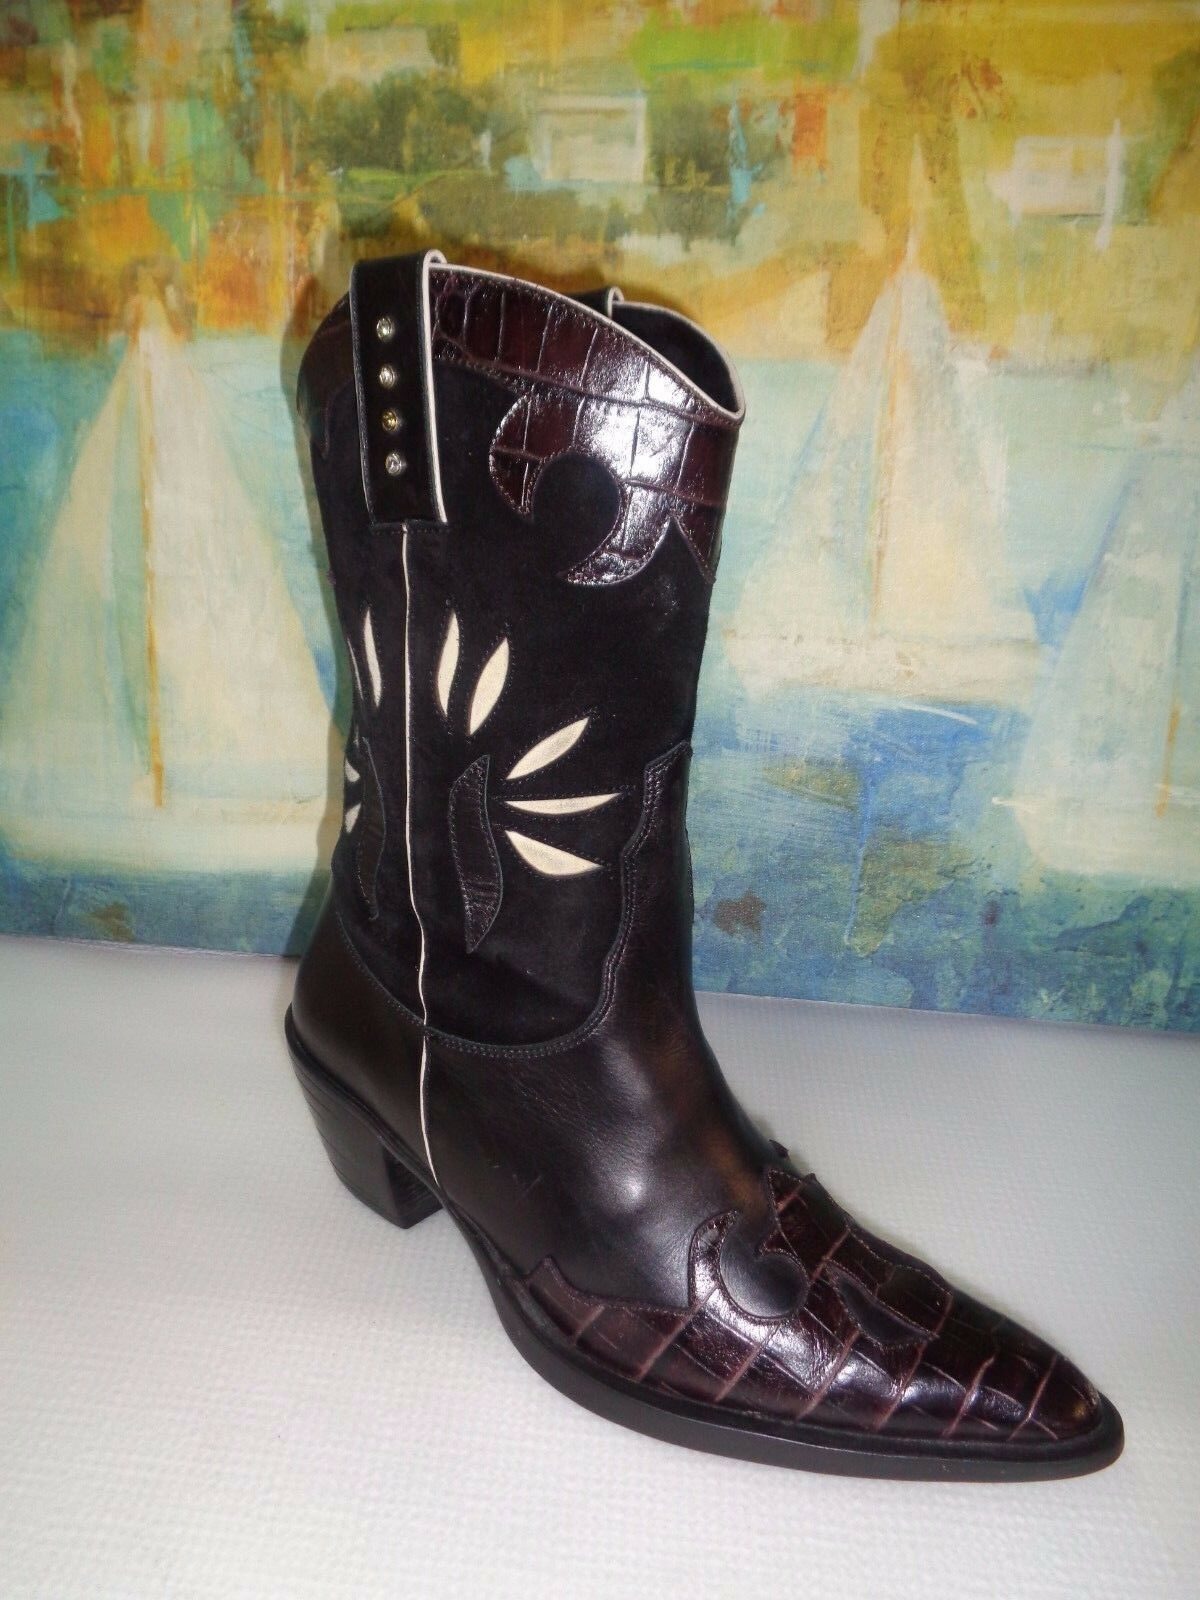 VAN ELI Black Faux LEATHER WESTERN BOOTS Sz 5.5